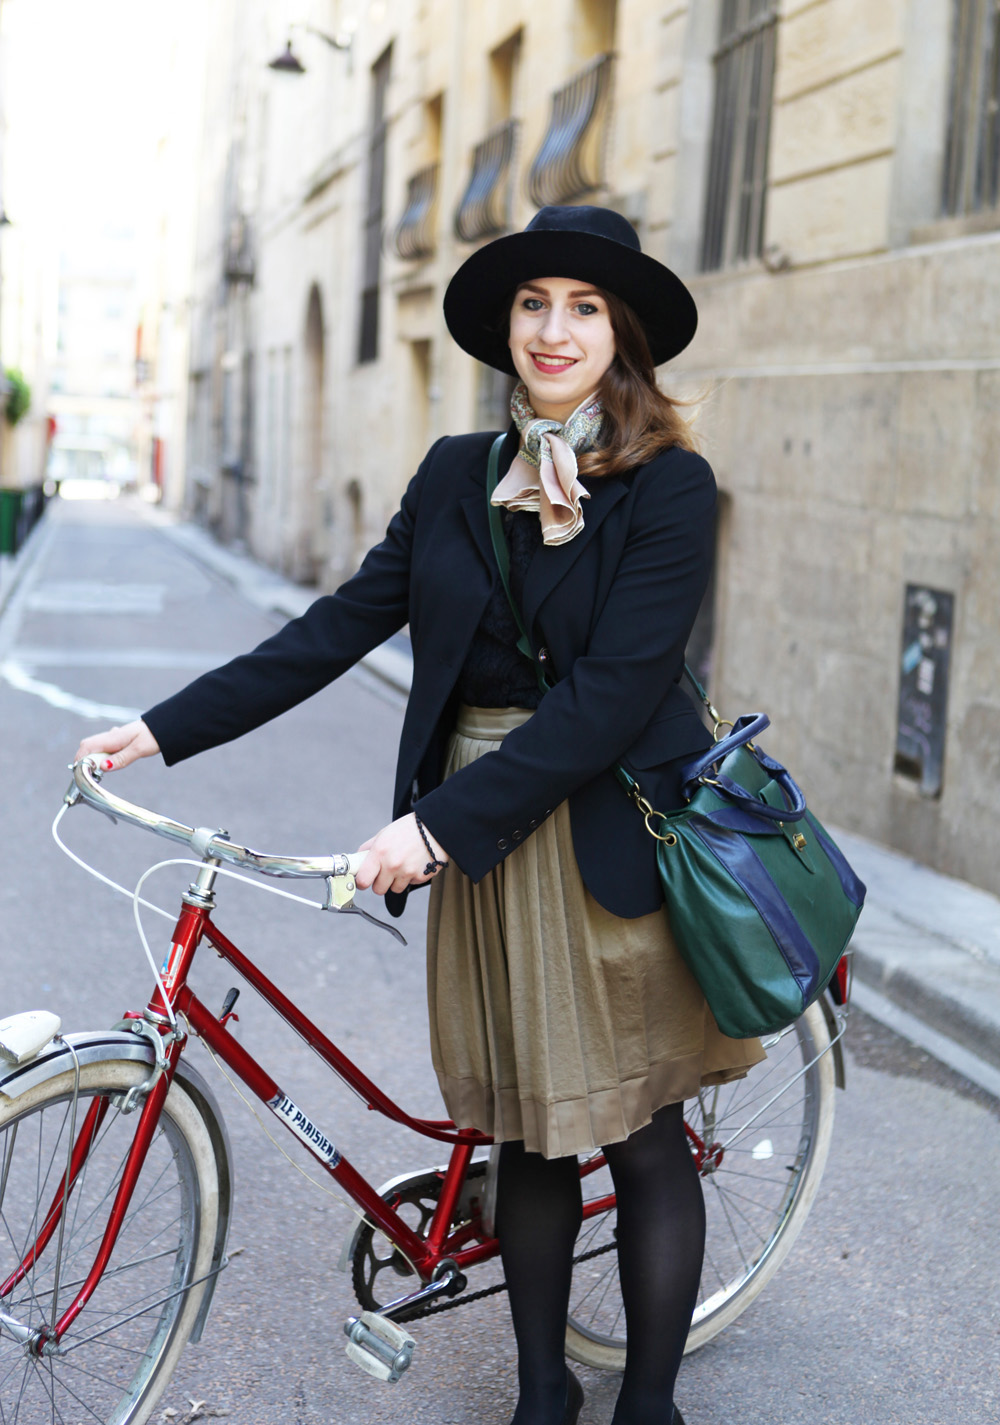 Beret-Baguette-Paris-Bike-Pretty-Bike-Fashion-Photo-Kelly-Miller-7